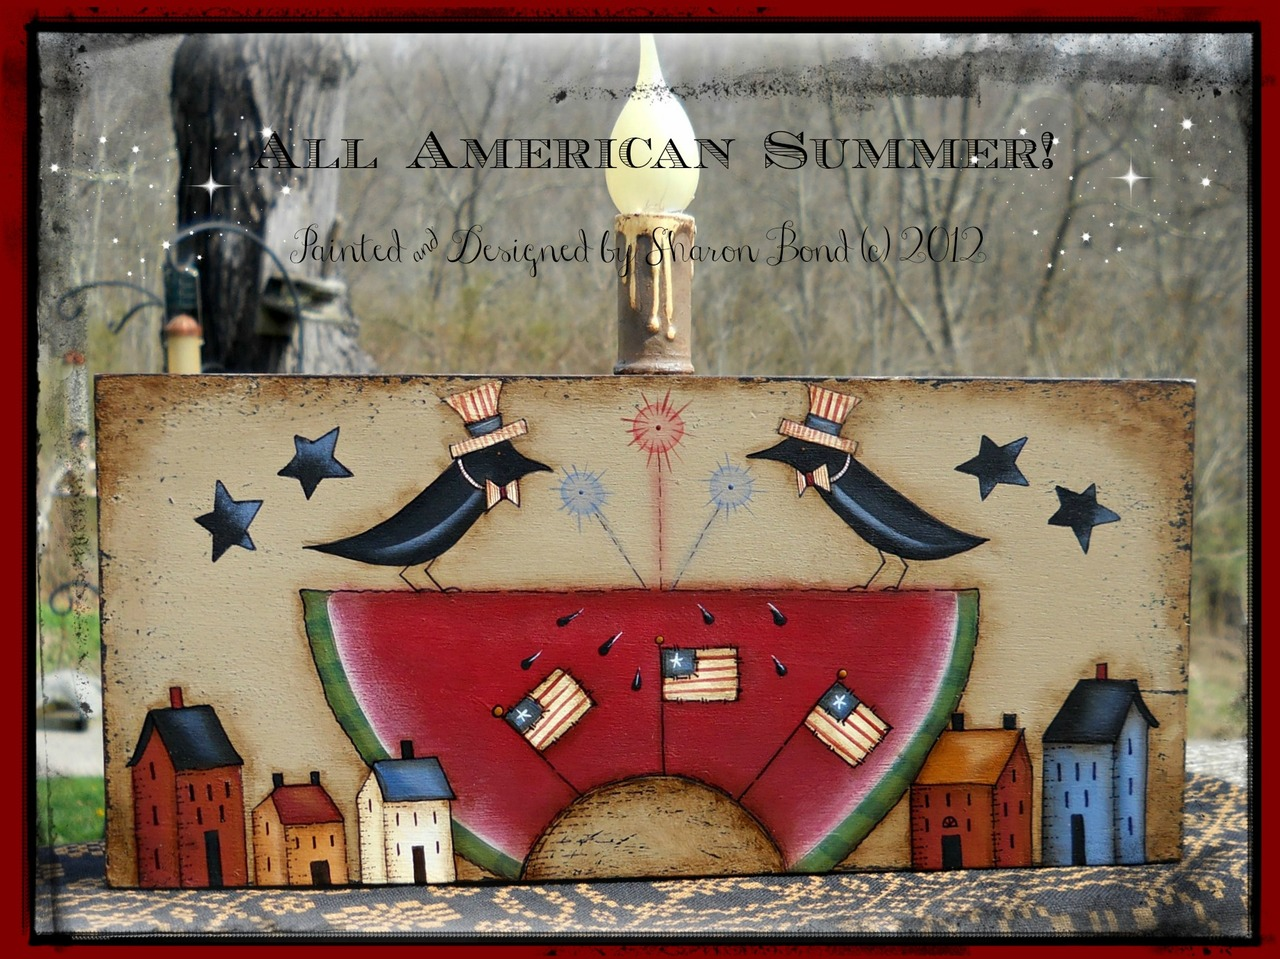 All American Summer - E-Packet - Sharon Bond